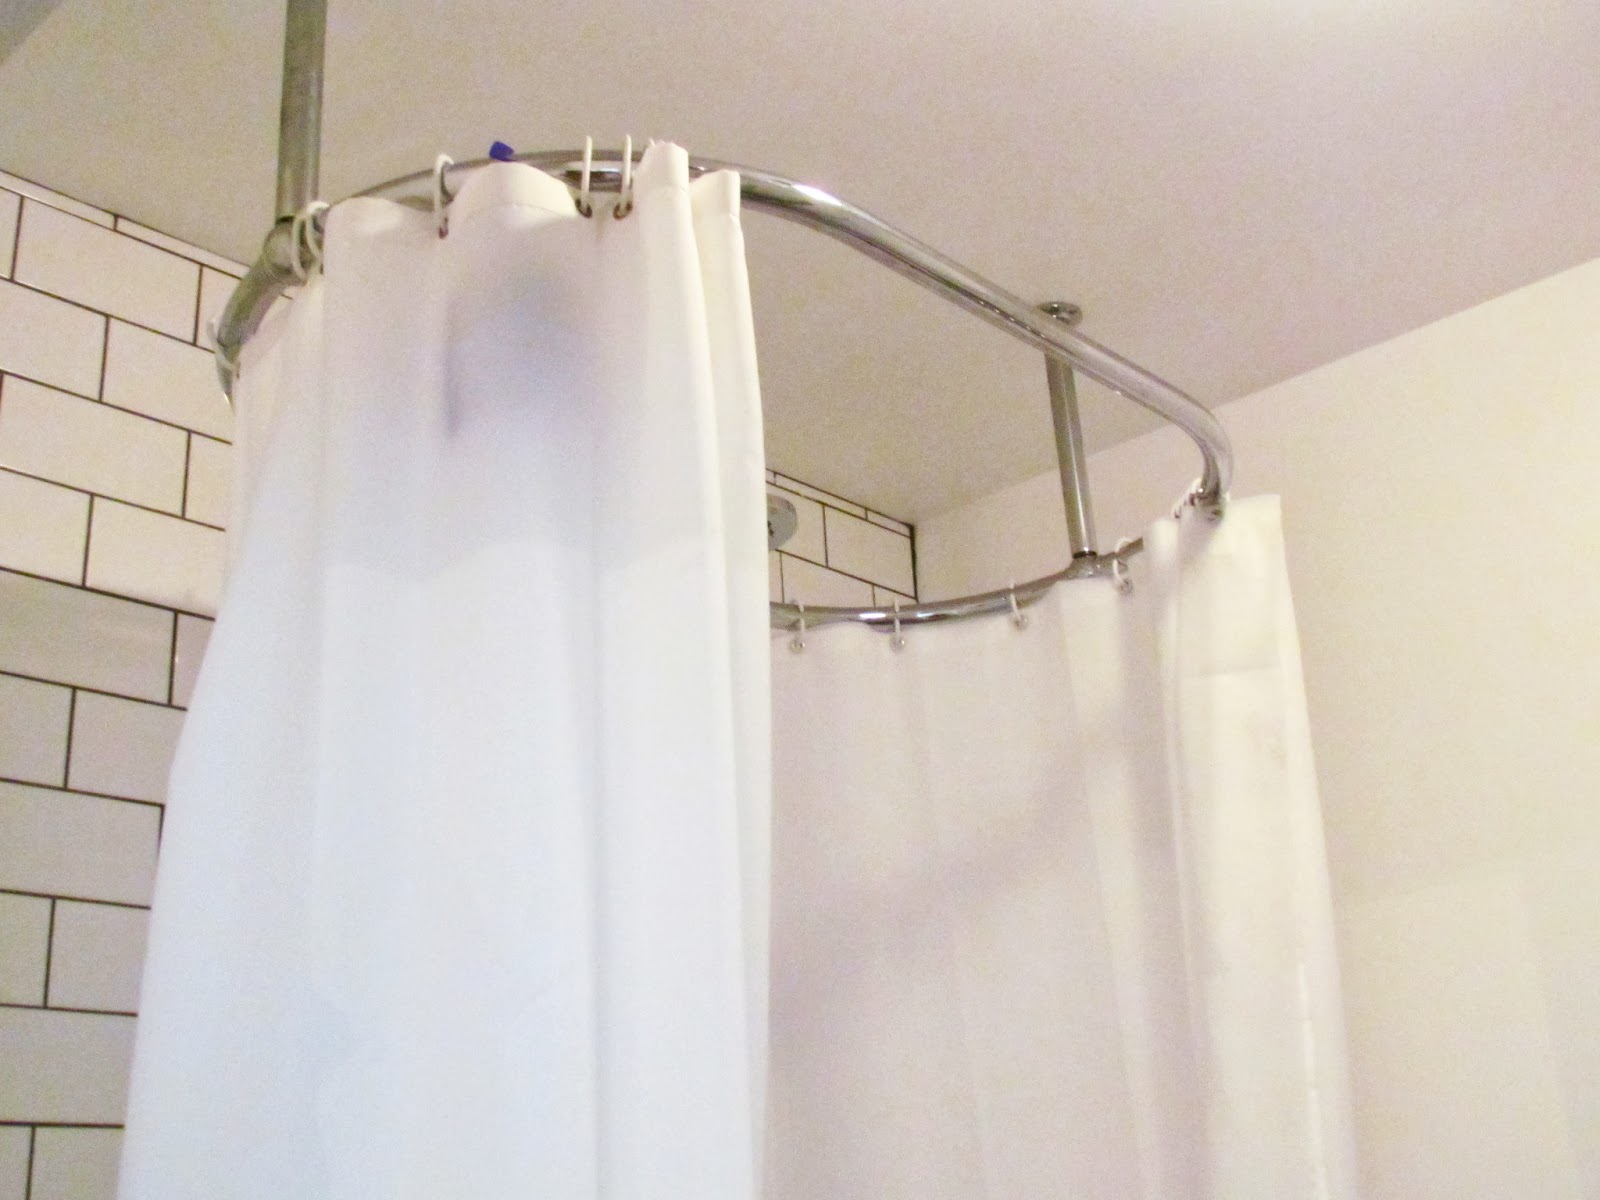 Oval Shower Curtain Rod Design Bed And Shower The Height Of with regard to dimensions 1600 X 1200